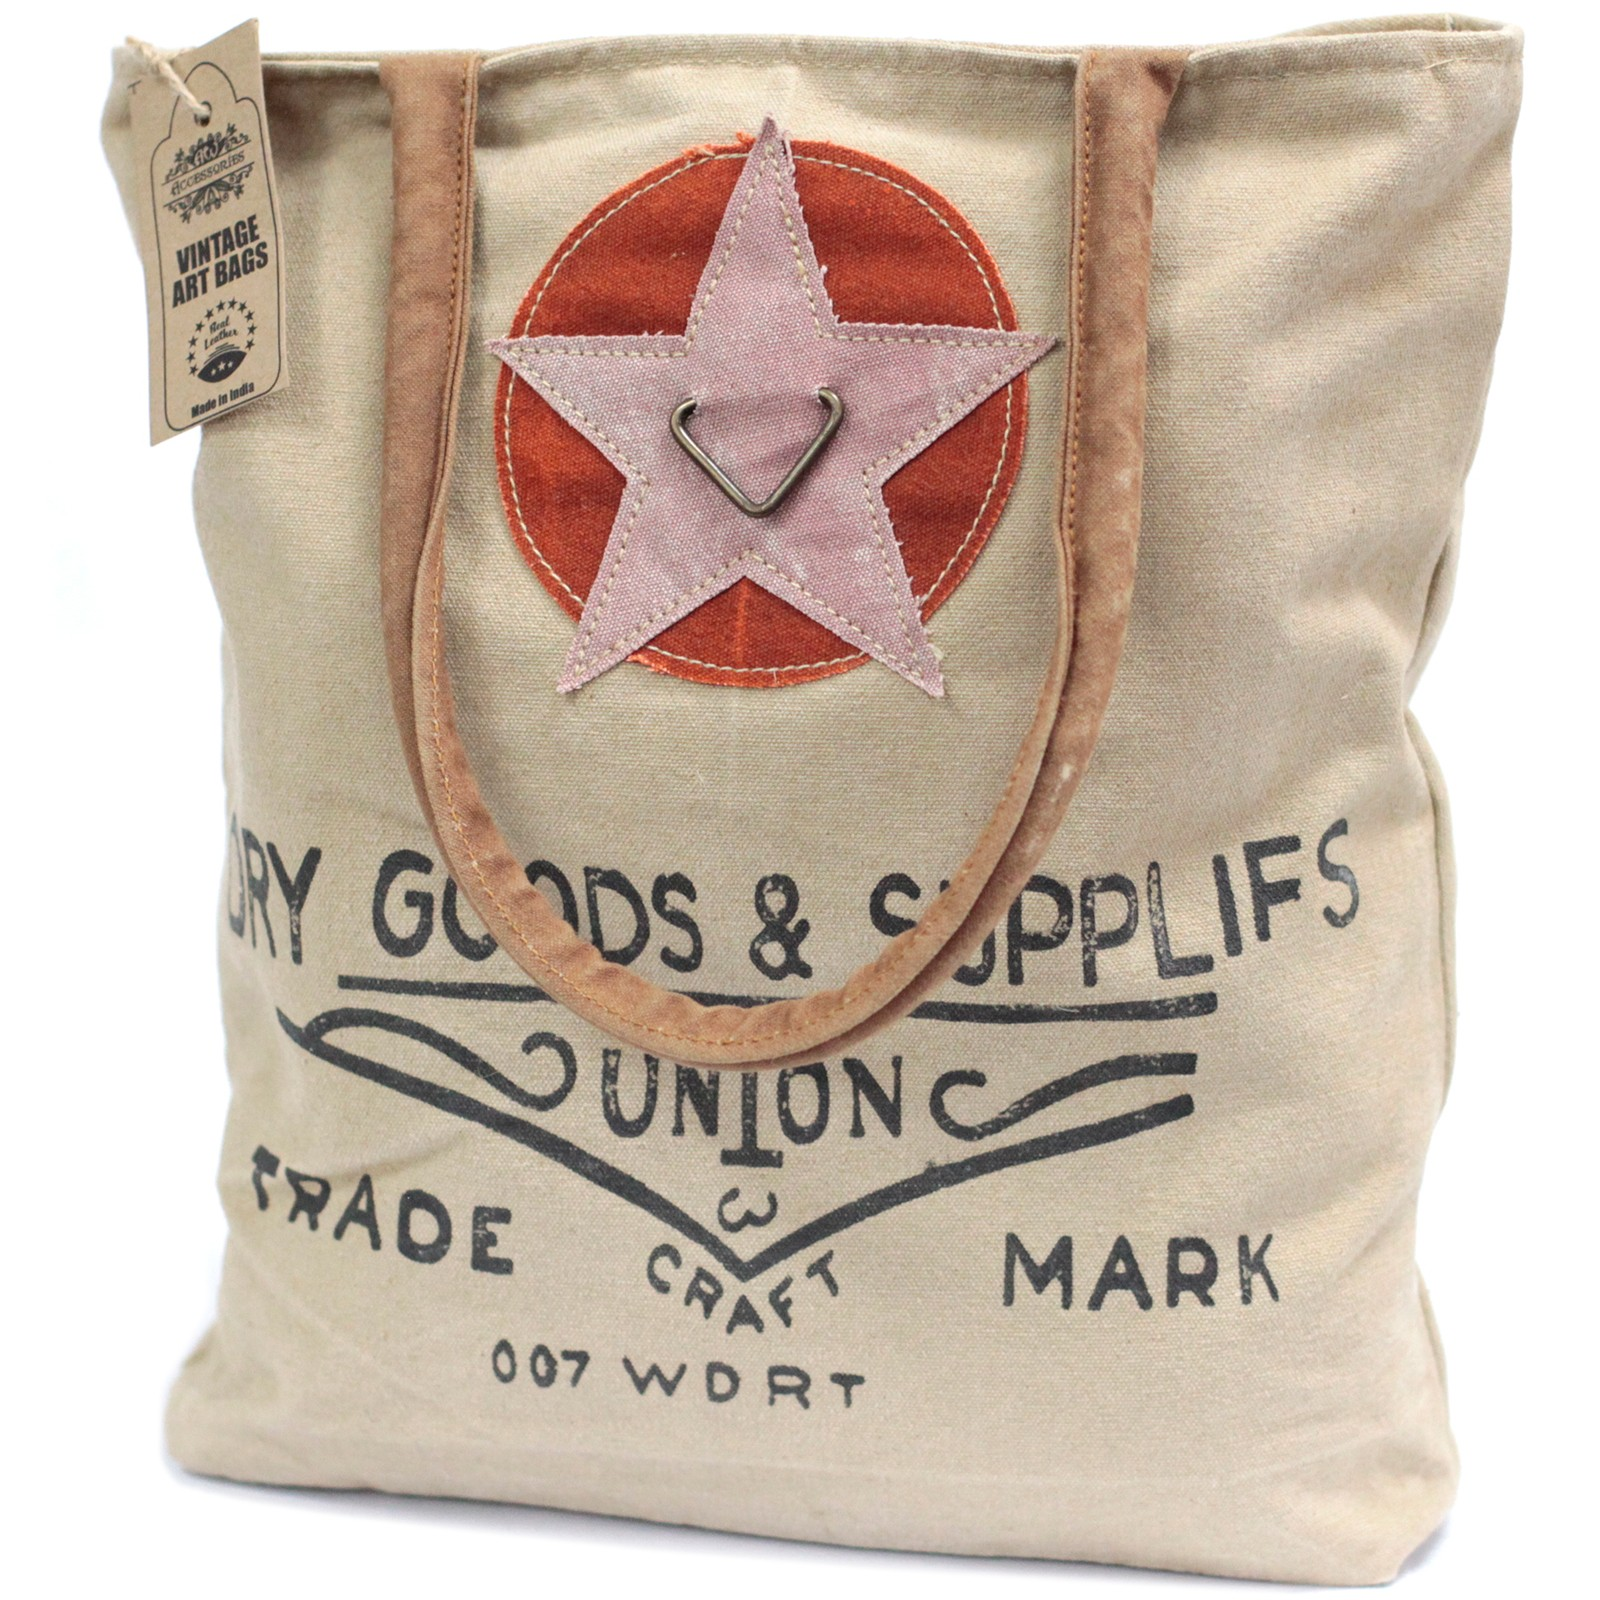 Vintage Bag Dry Goods and Supplies